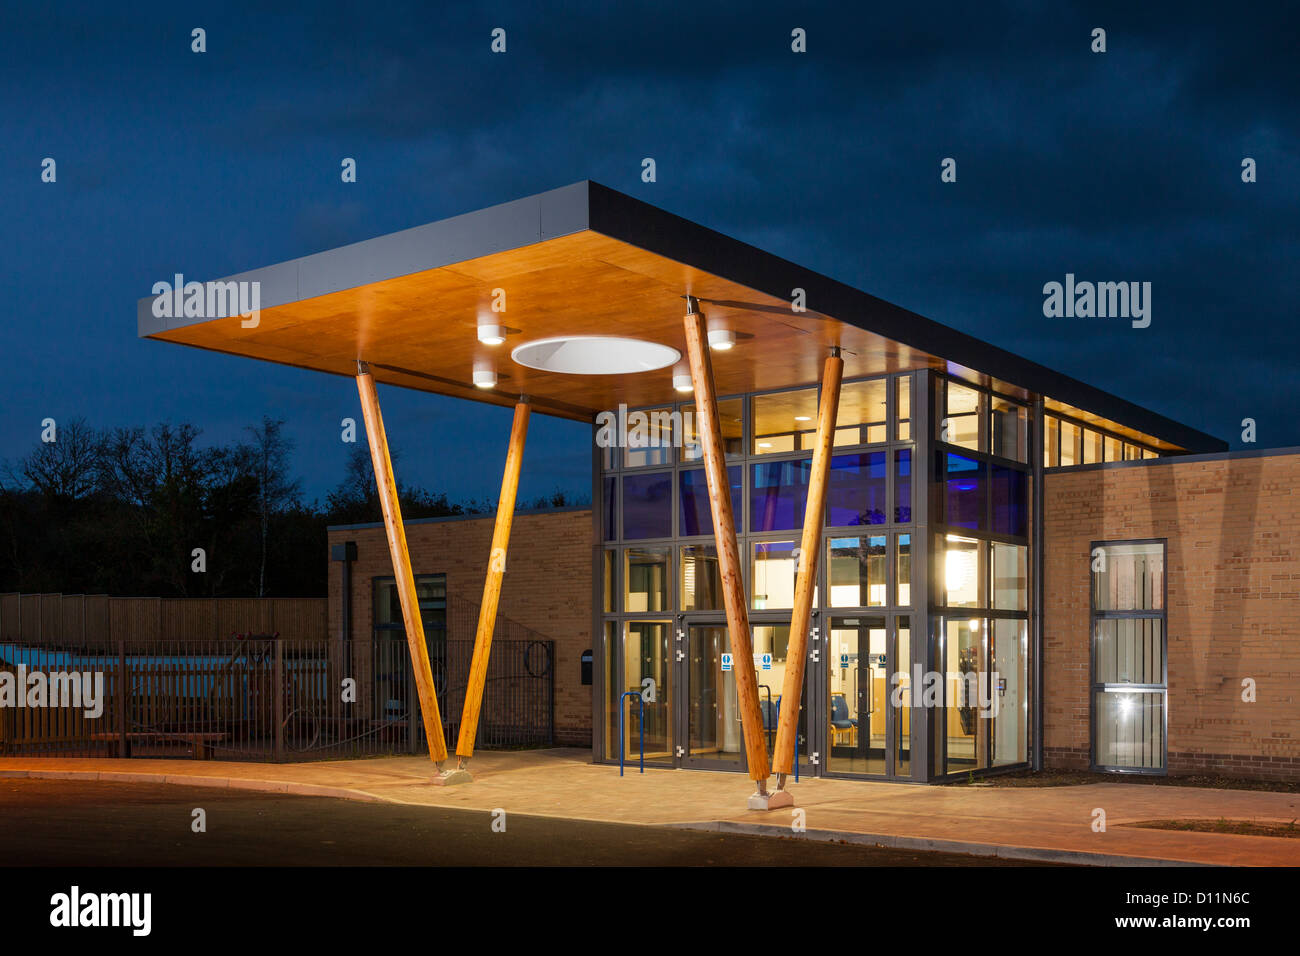 the modern architecture canopy forming the main entrance to Mountjoy School Beaminister at dusk & the modern architecture canopy forming the main entrance to ...